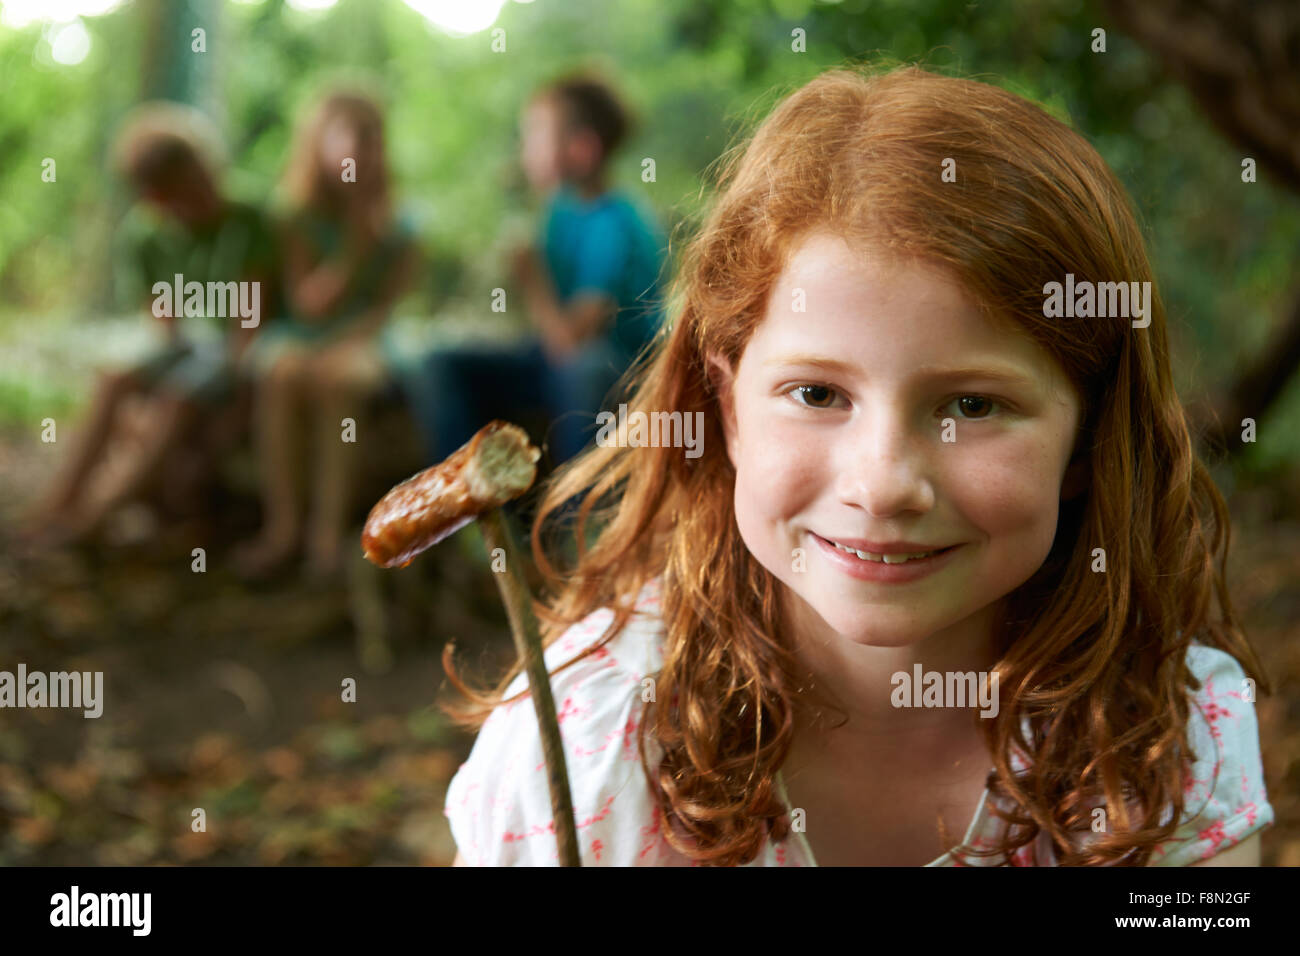 Girl Eating Sausage Cooked On Camp Fire With Friends - Stock Image